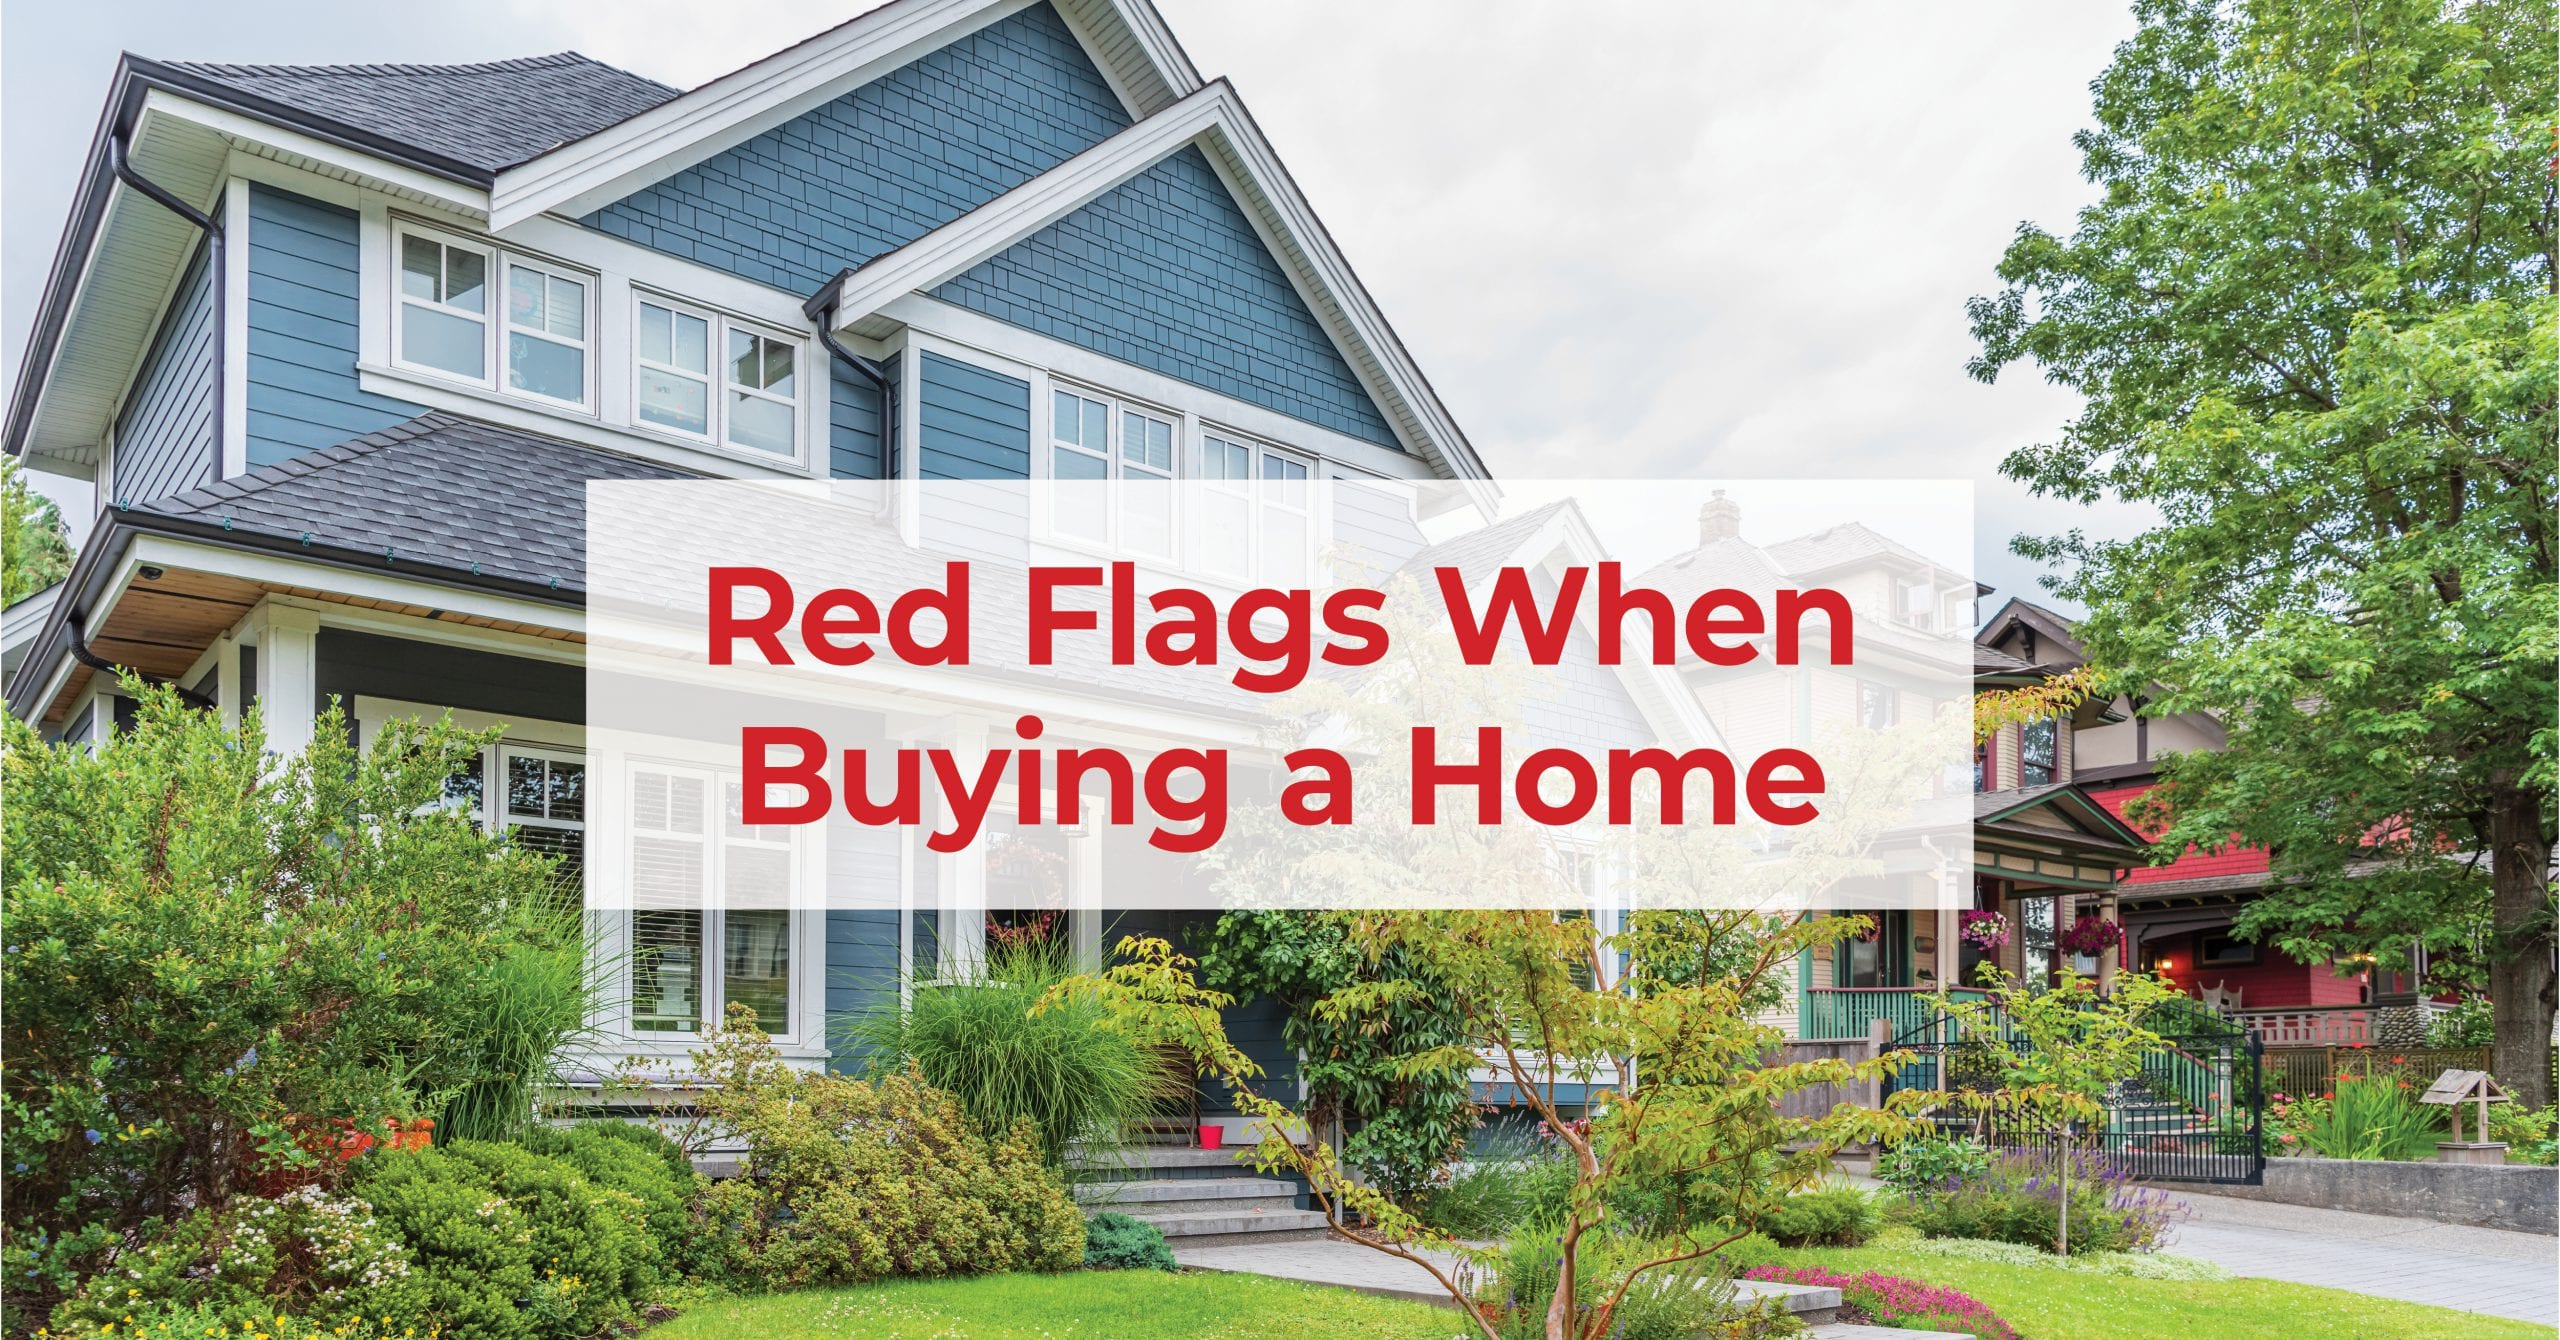 Red flags when buying a home